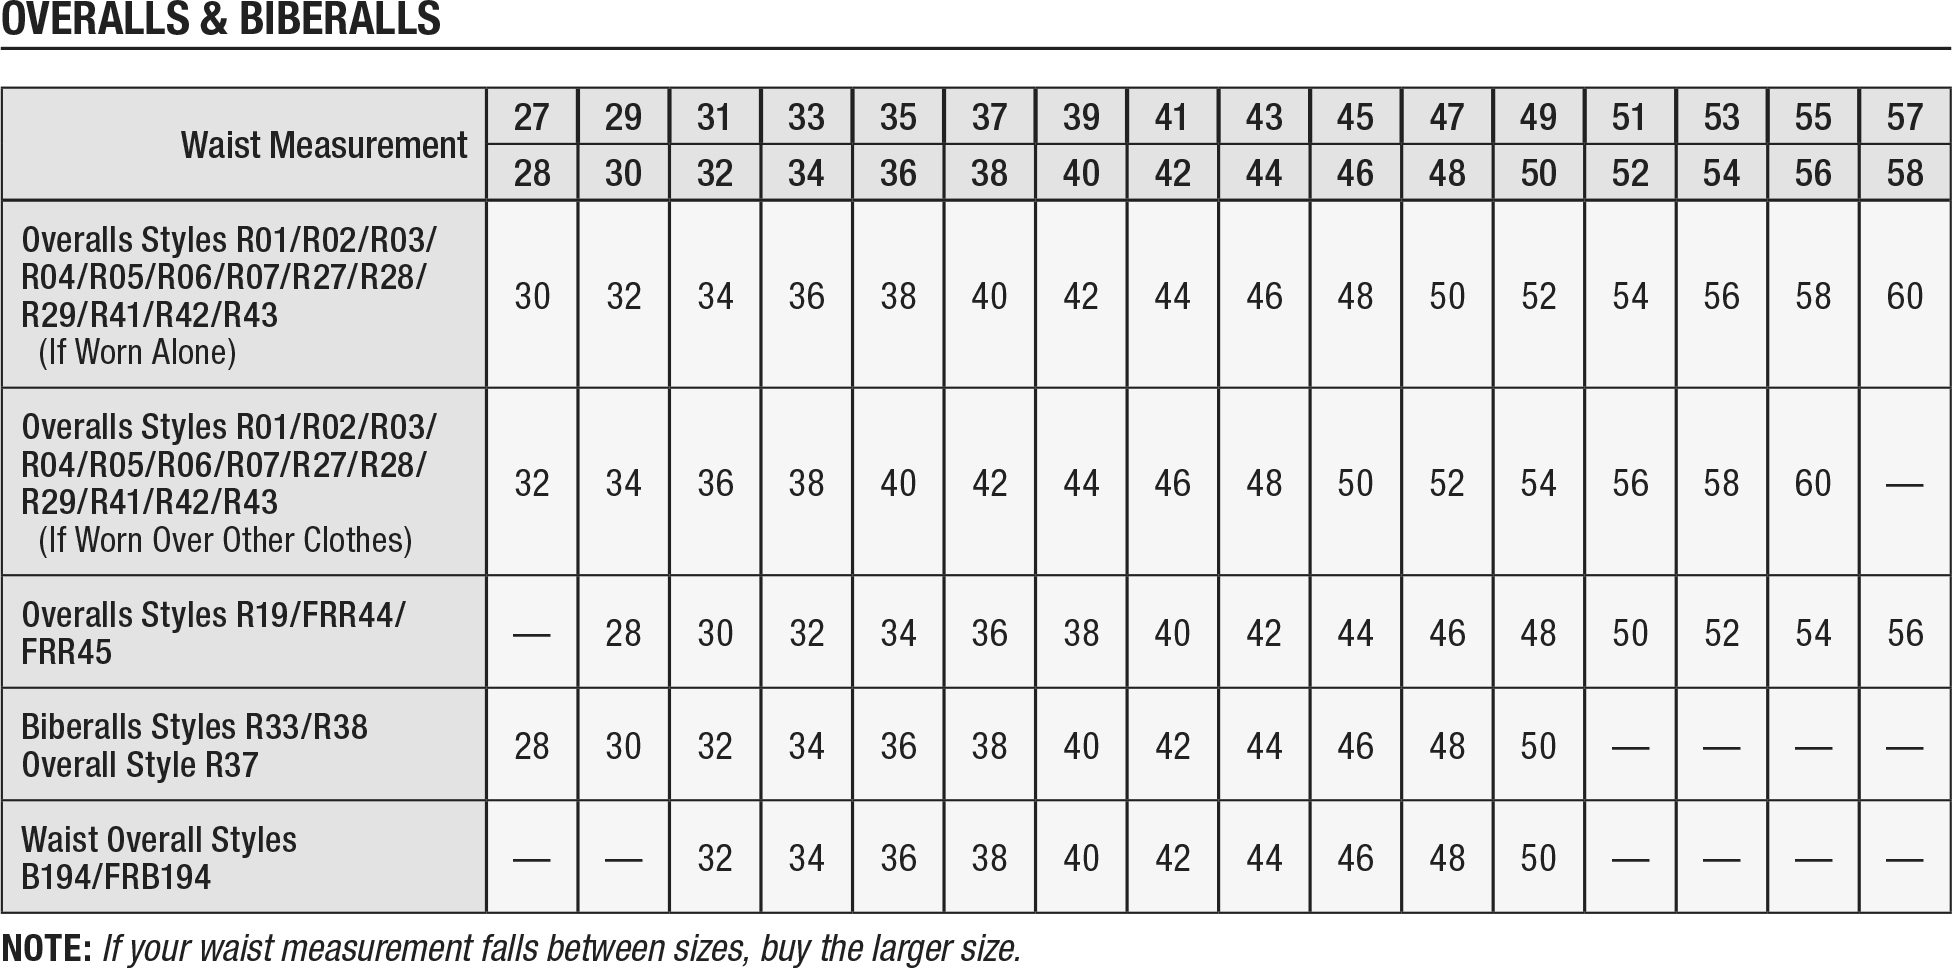 Overall and Bib sizing chart for Carhartt garments